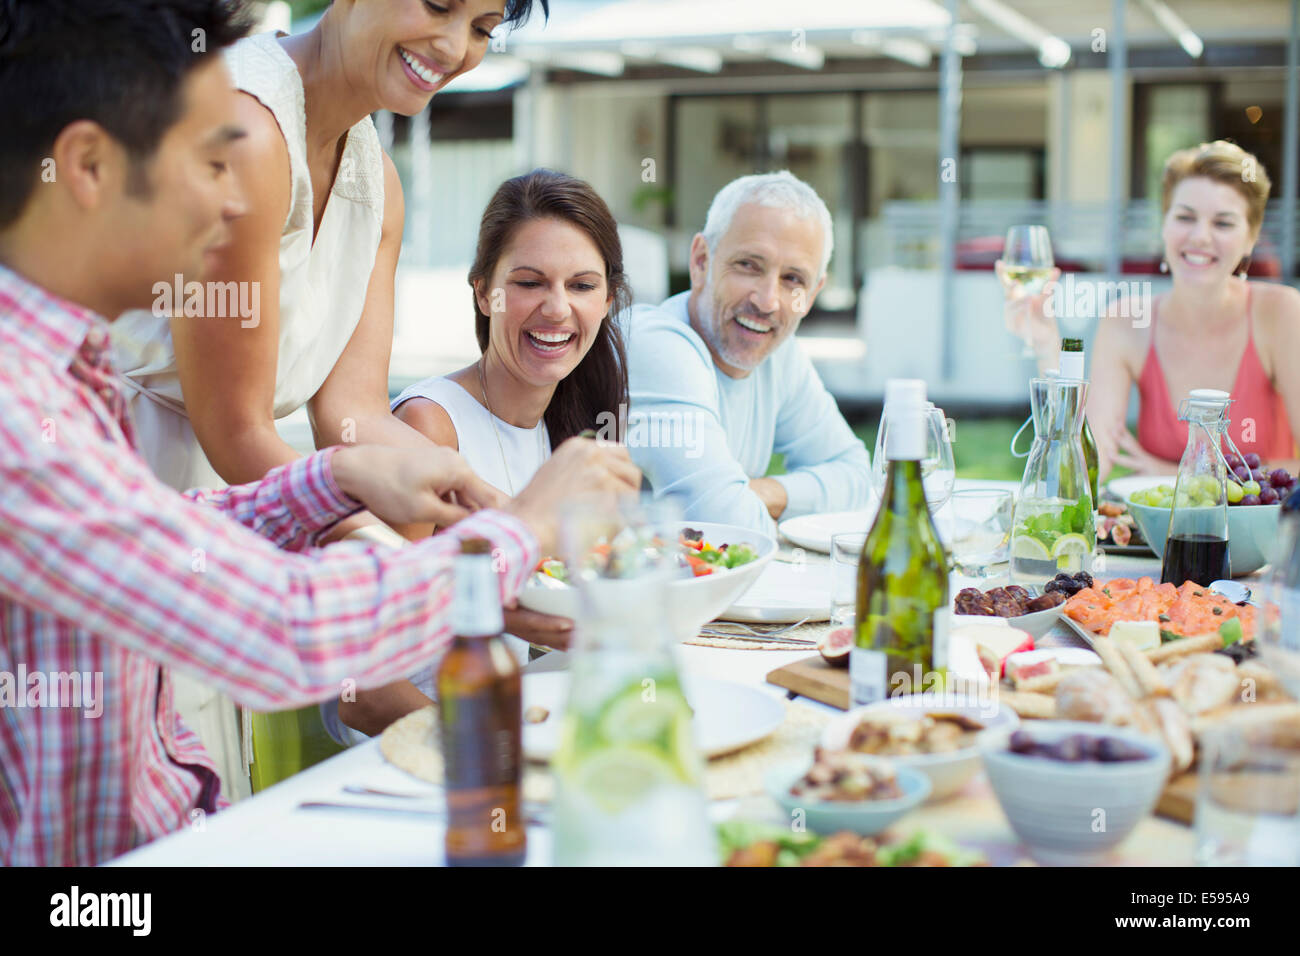 Woman serving friends at party - Stock Image